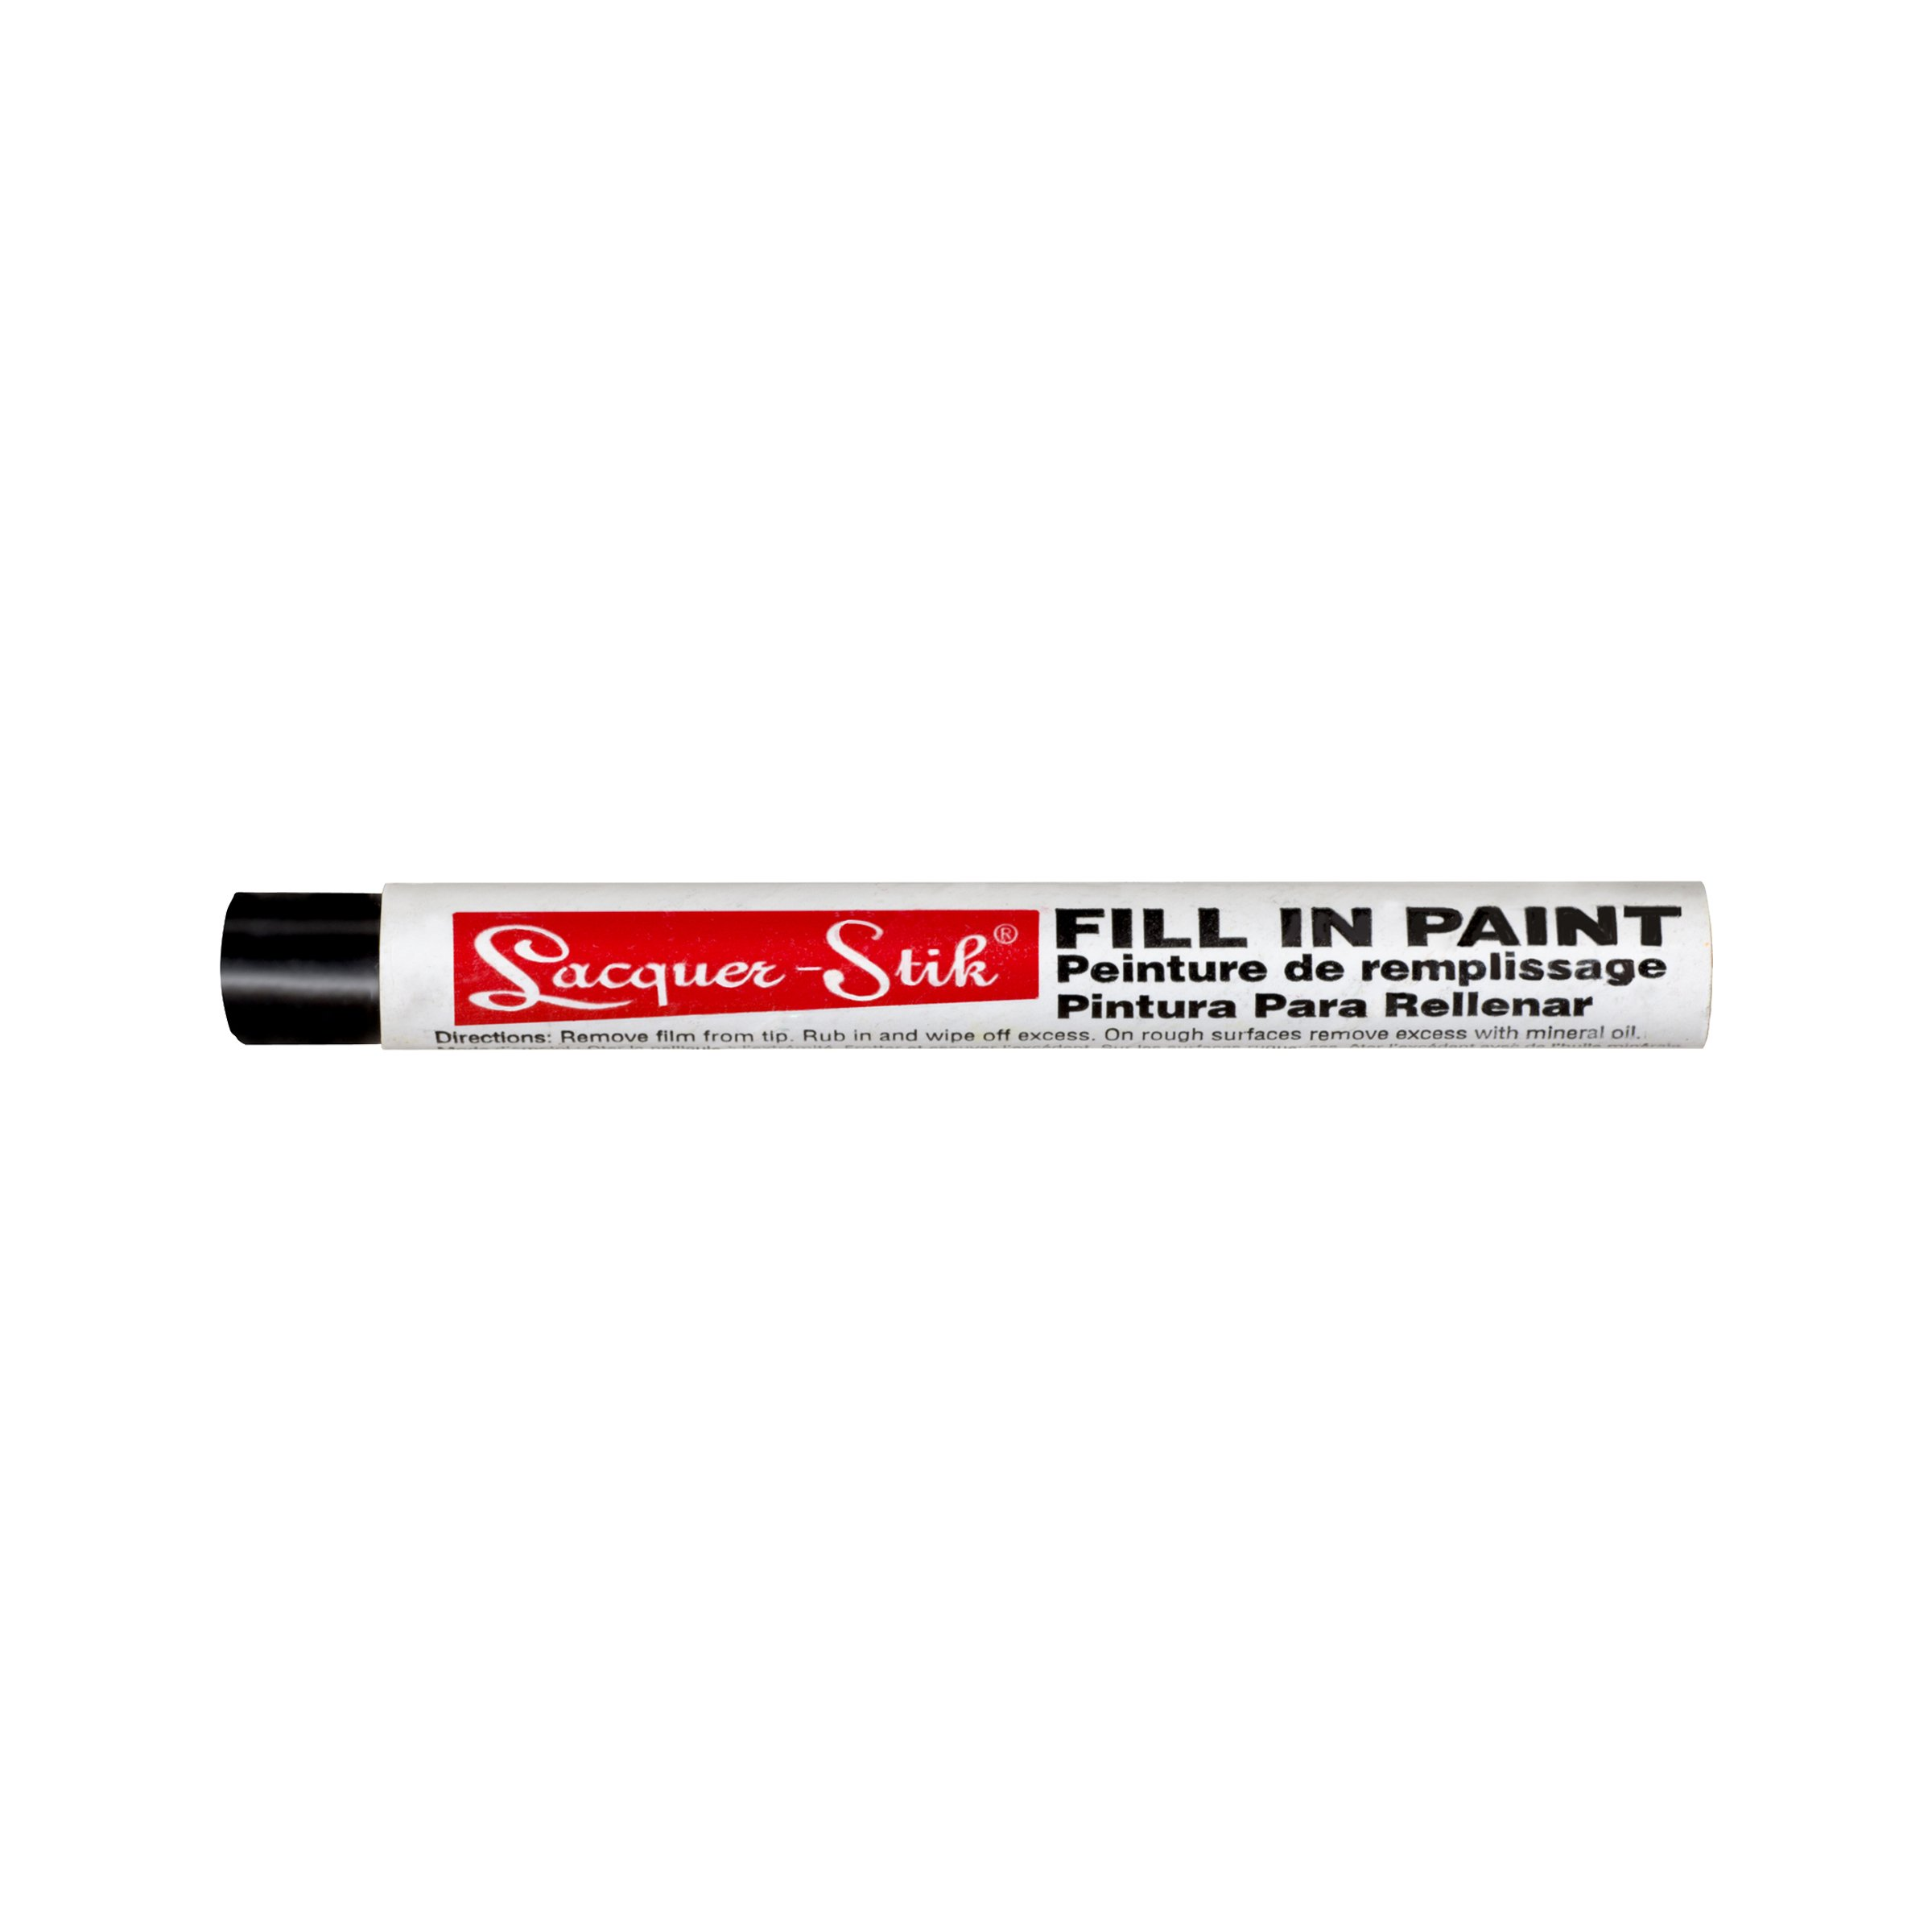 """Markal Lacquer-Stik Highlighter Fill-In Paint Crayon, 3/8"""" Diameter, 4-1/4"""" Length, Black (Pack of 12)"""